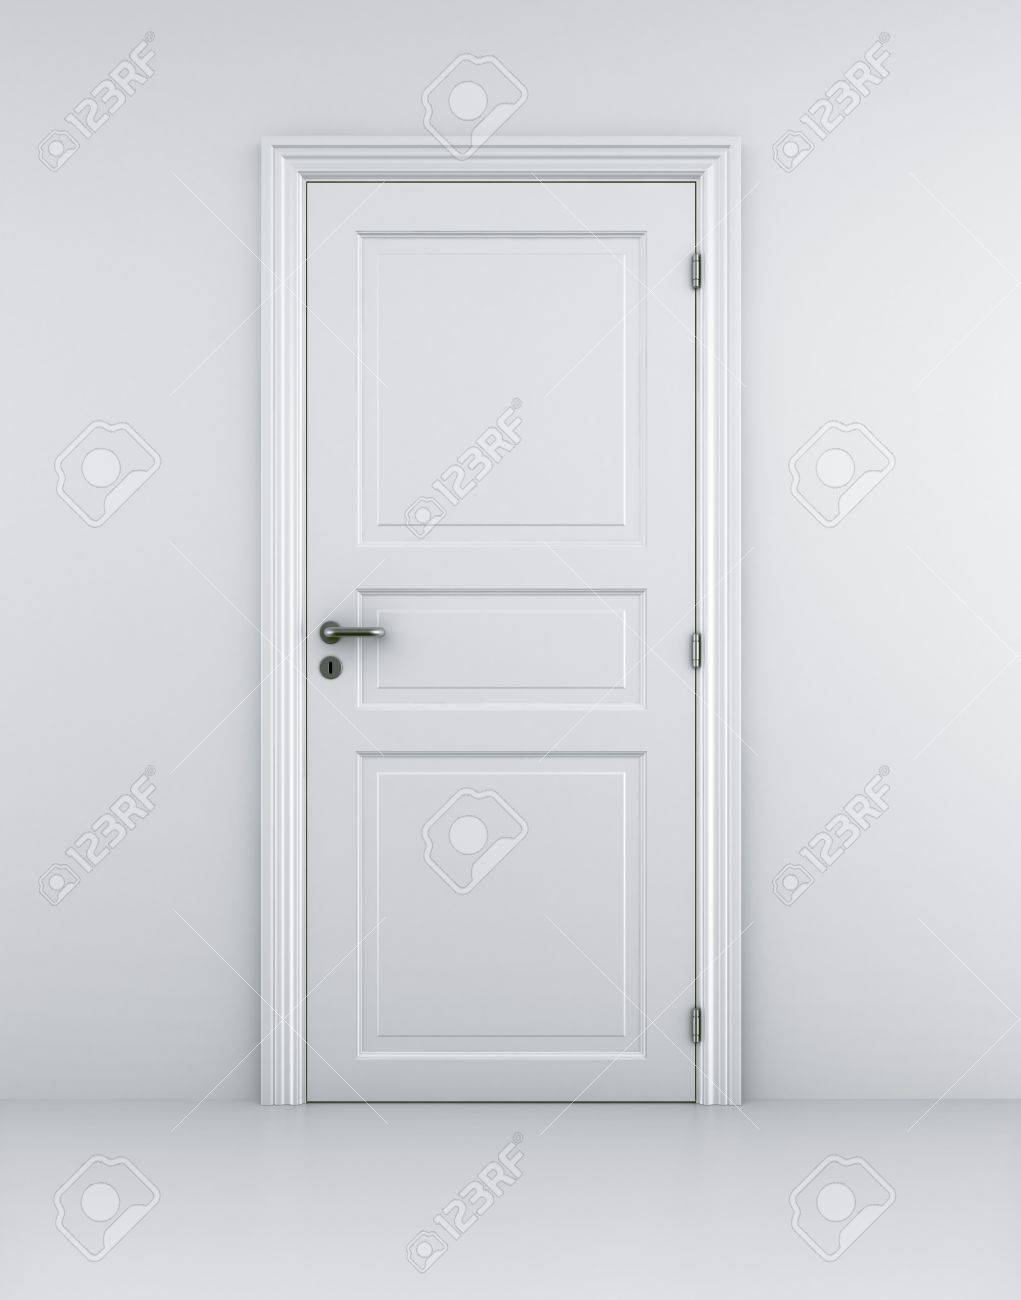 3d rendering of a door in a white room Stock Photo - 4259515